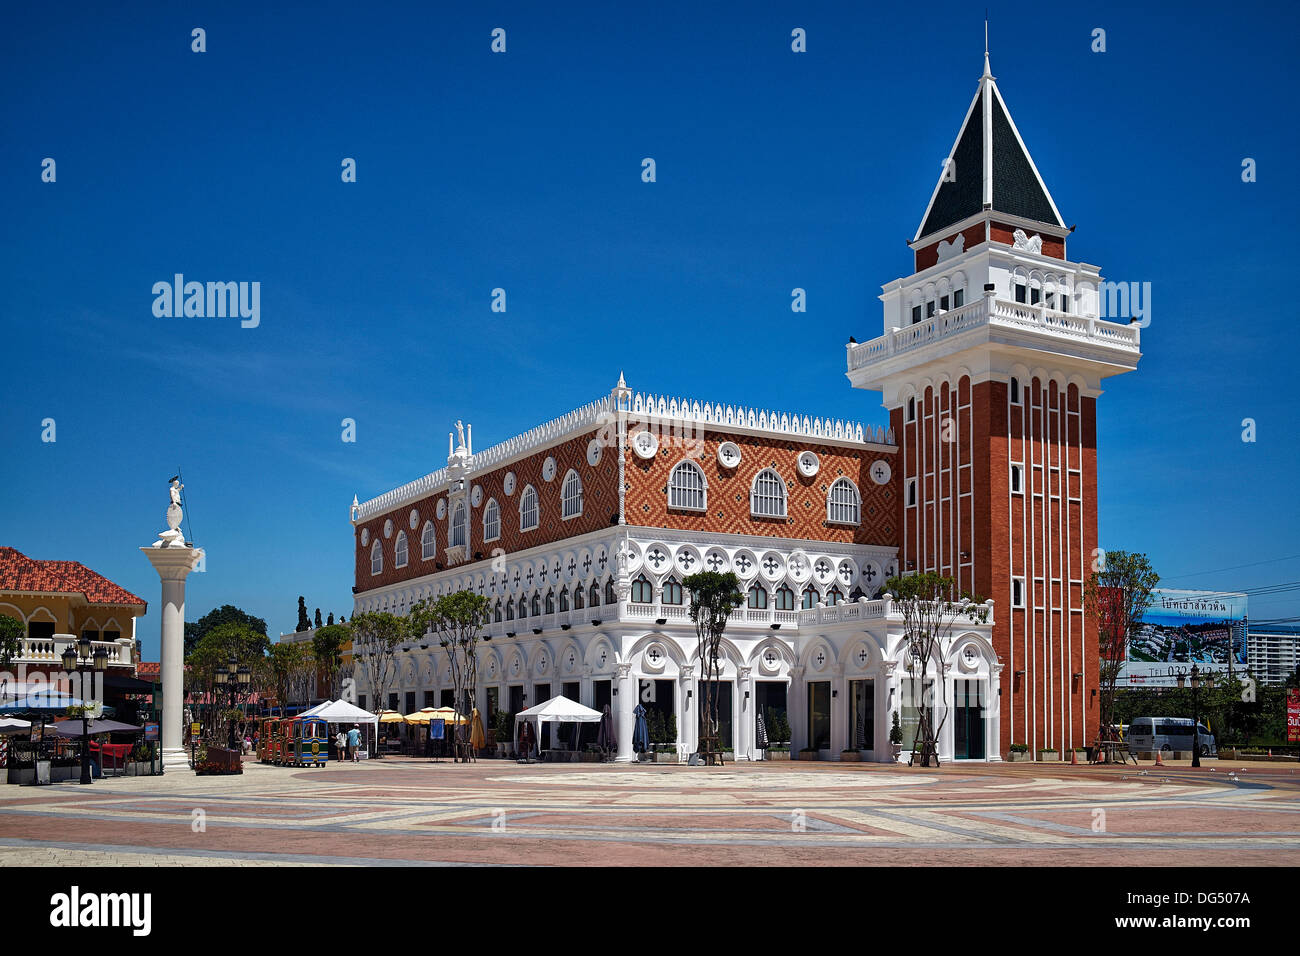 Venetian styled architecture at a newly Venice styled shopping mall appropriately named The Venezia Hua Hin Thailand Asia - Stock Image